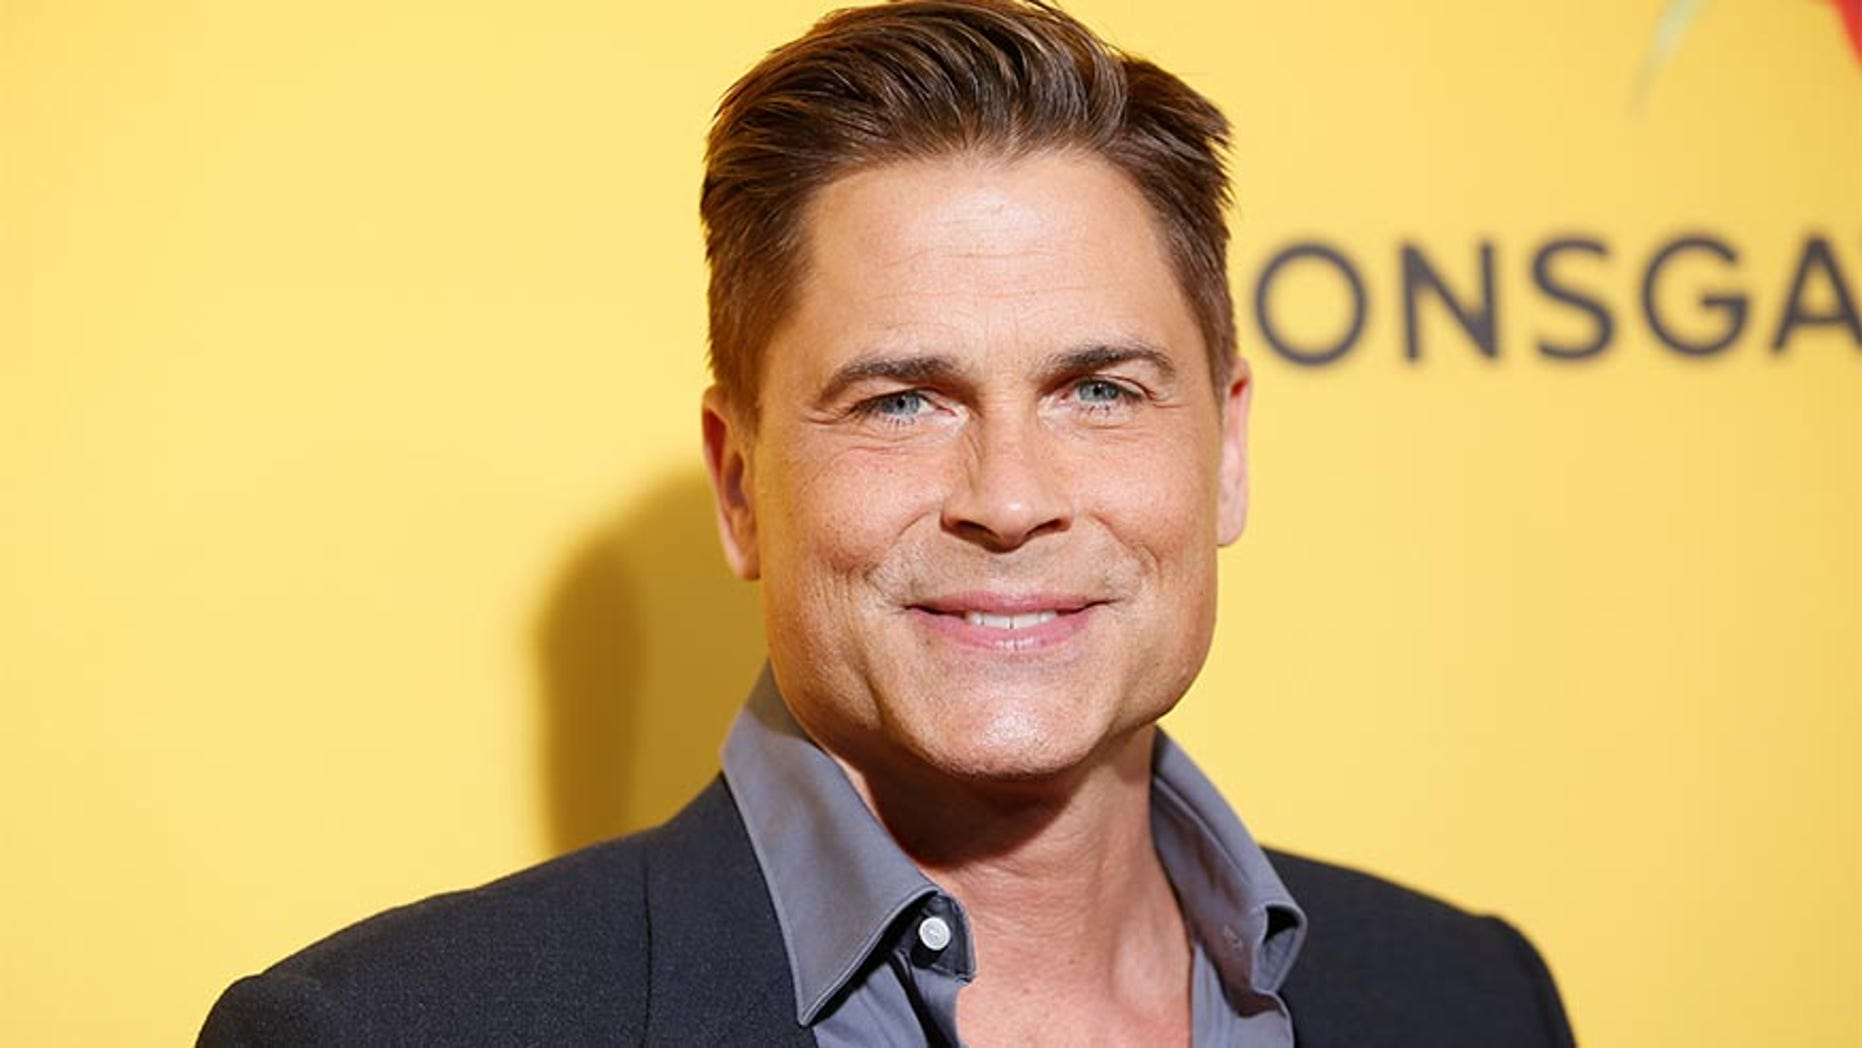 Rob Lowe's tweet about Sen. Elizabeth Warren was not well-received by some in Hollywood